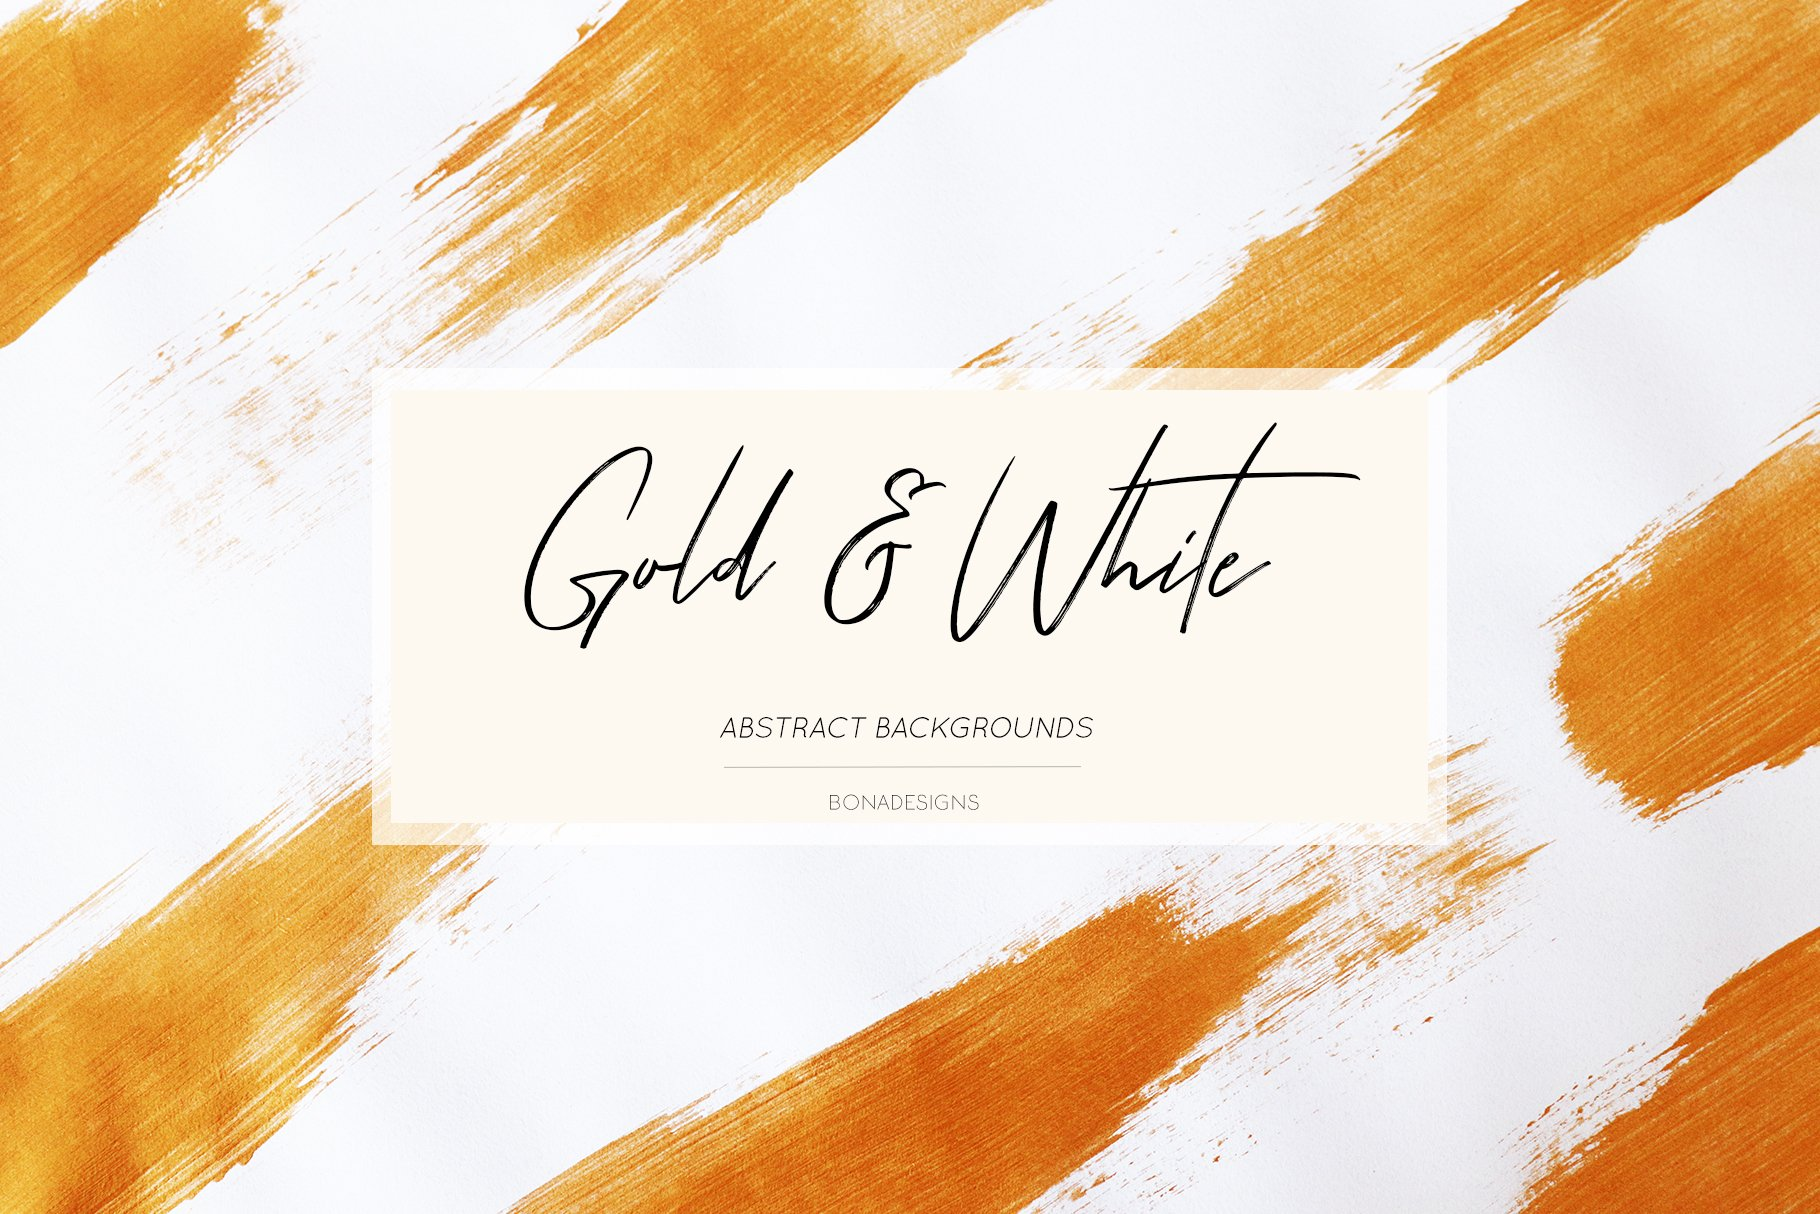 Gold Digital Papers Hand Painted Abstract Textures 288281 Backgrounds Design Bundles